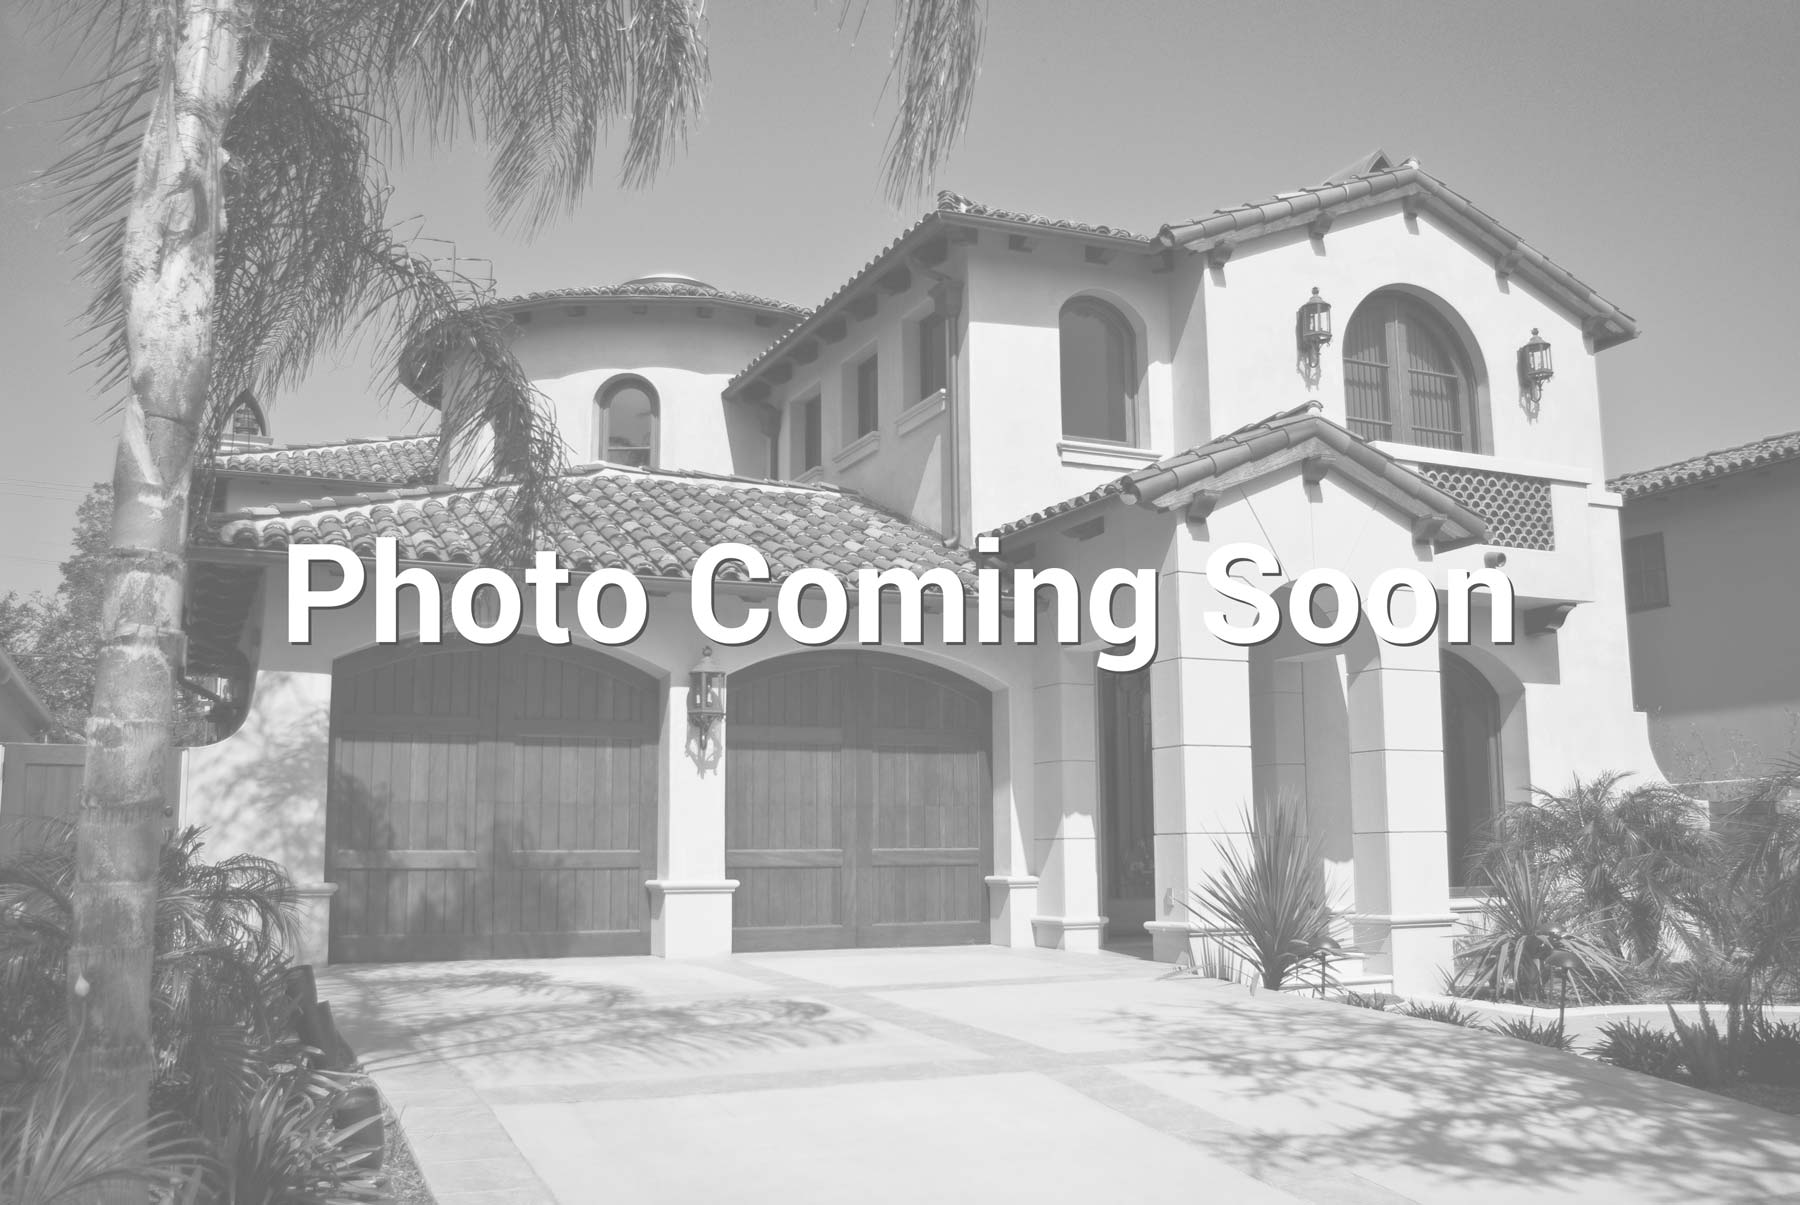 $575,000 - 3Br/2Ba -  for Sale in Lakewood Ranch Ccv Sp Hh, Lakewood Ranch